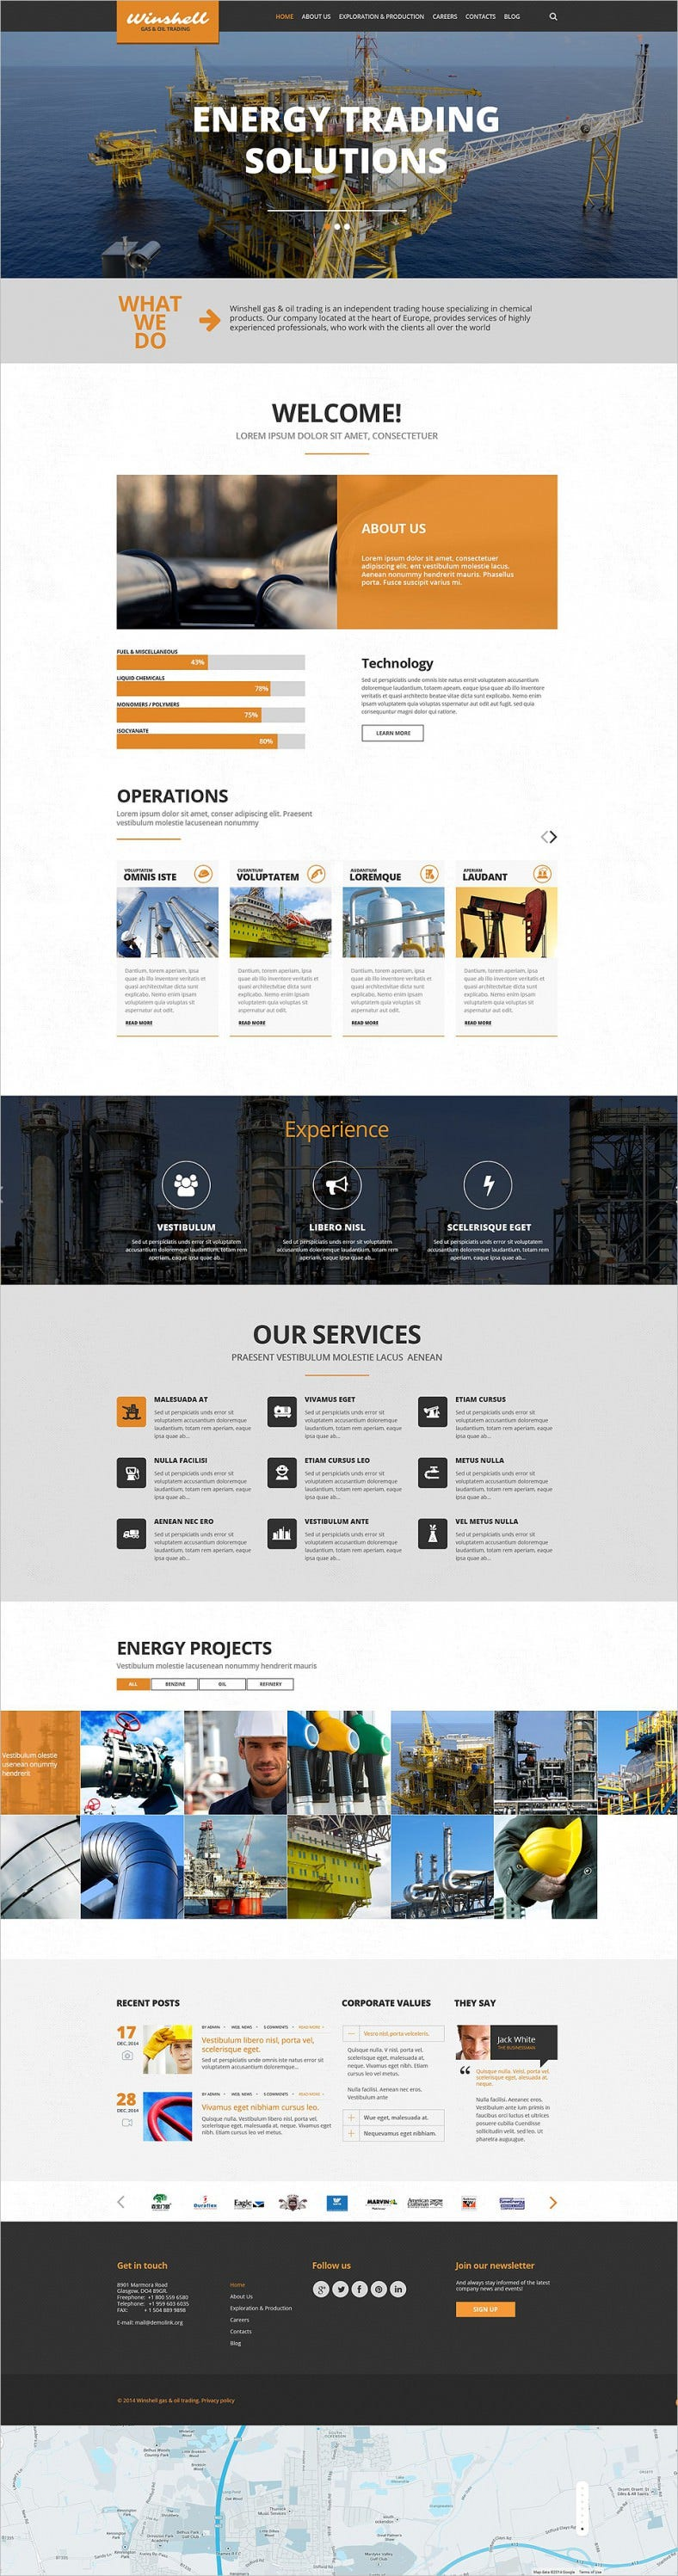 Oil gas company wordpress website templates themes free parallax scrolling wp theme for gas and oil trading website free demo download pronofoot35fo Gallery